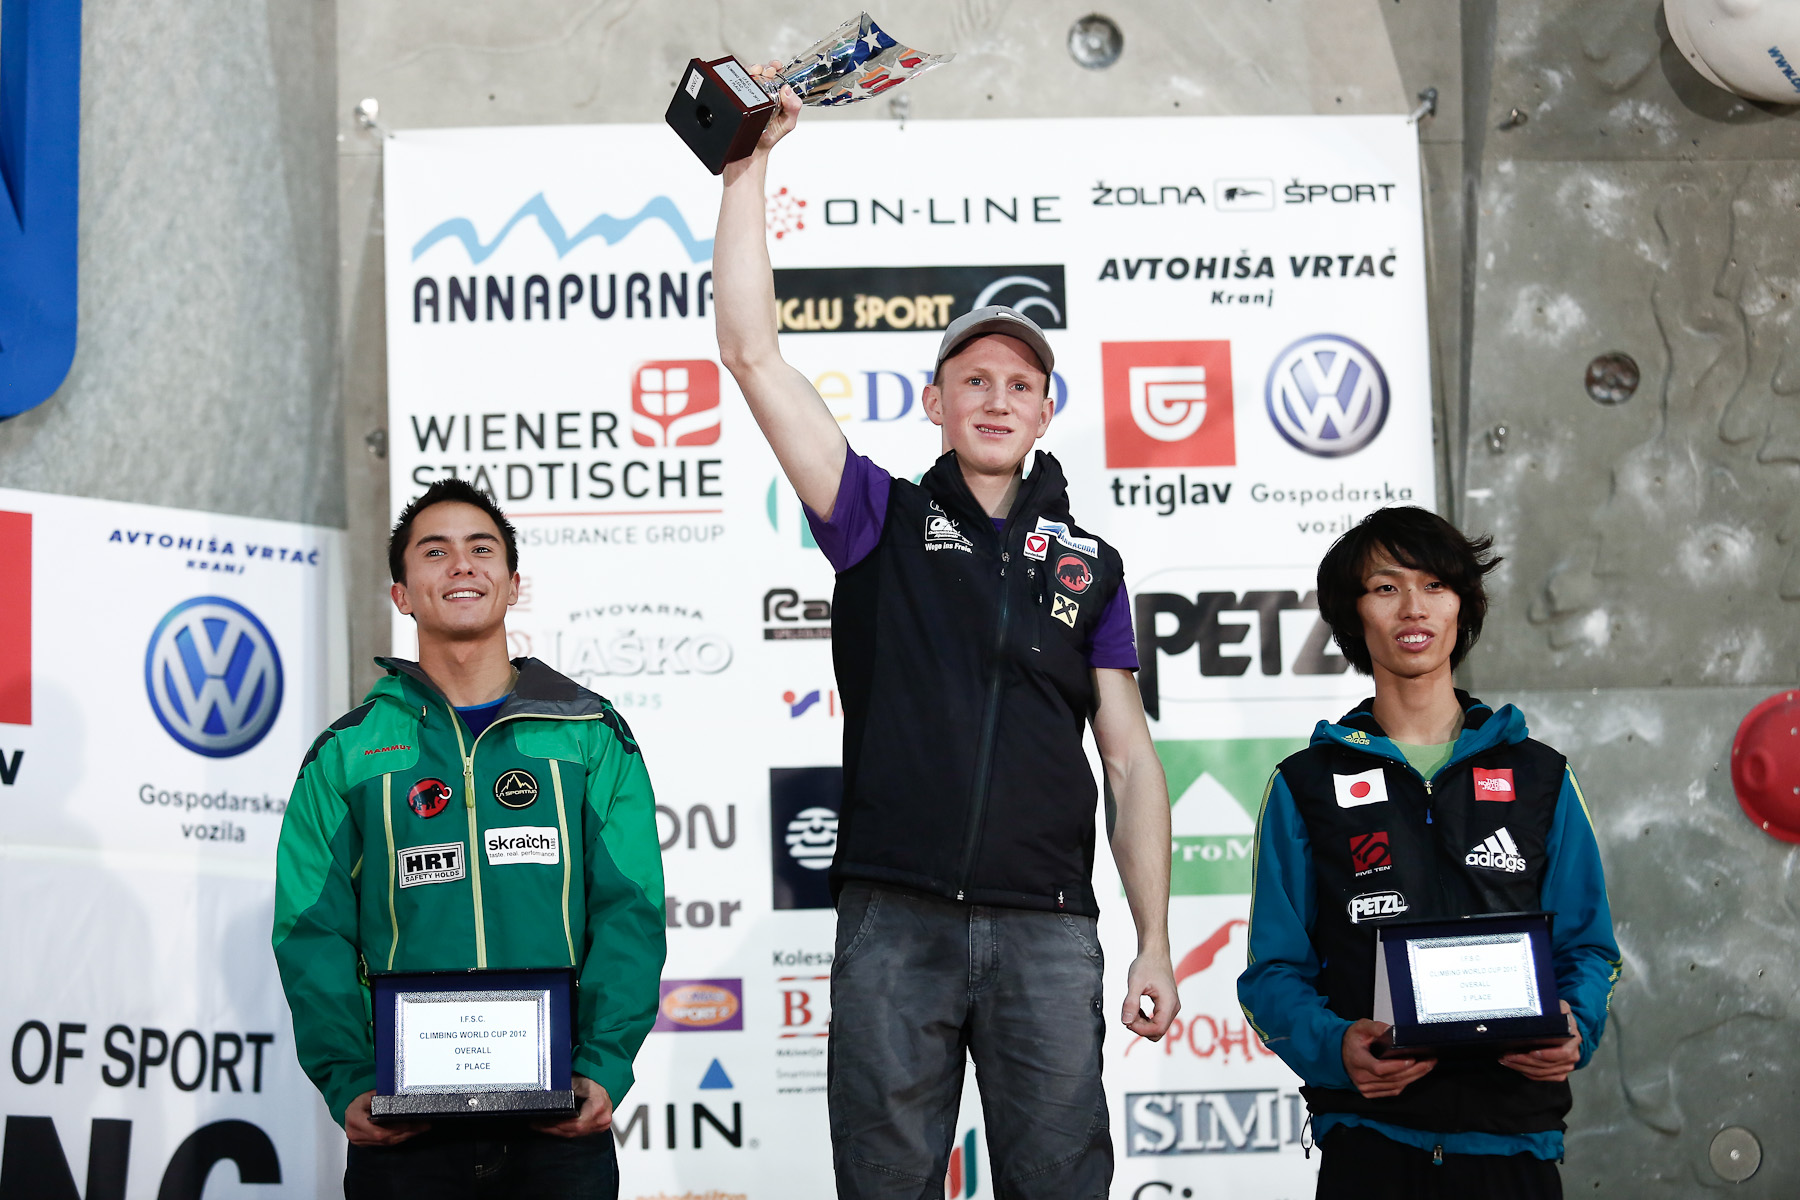 Sean McColl (CAN), Jakob Schubert (AUT) and Sachi Amma (JPN) on the podium for overal results in the IFSC climbing world cup in Kranj, Slovenia, on Nov 18, 2012.